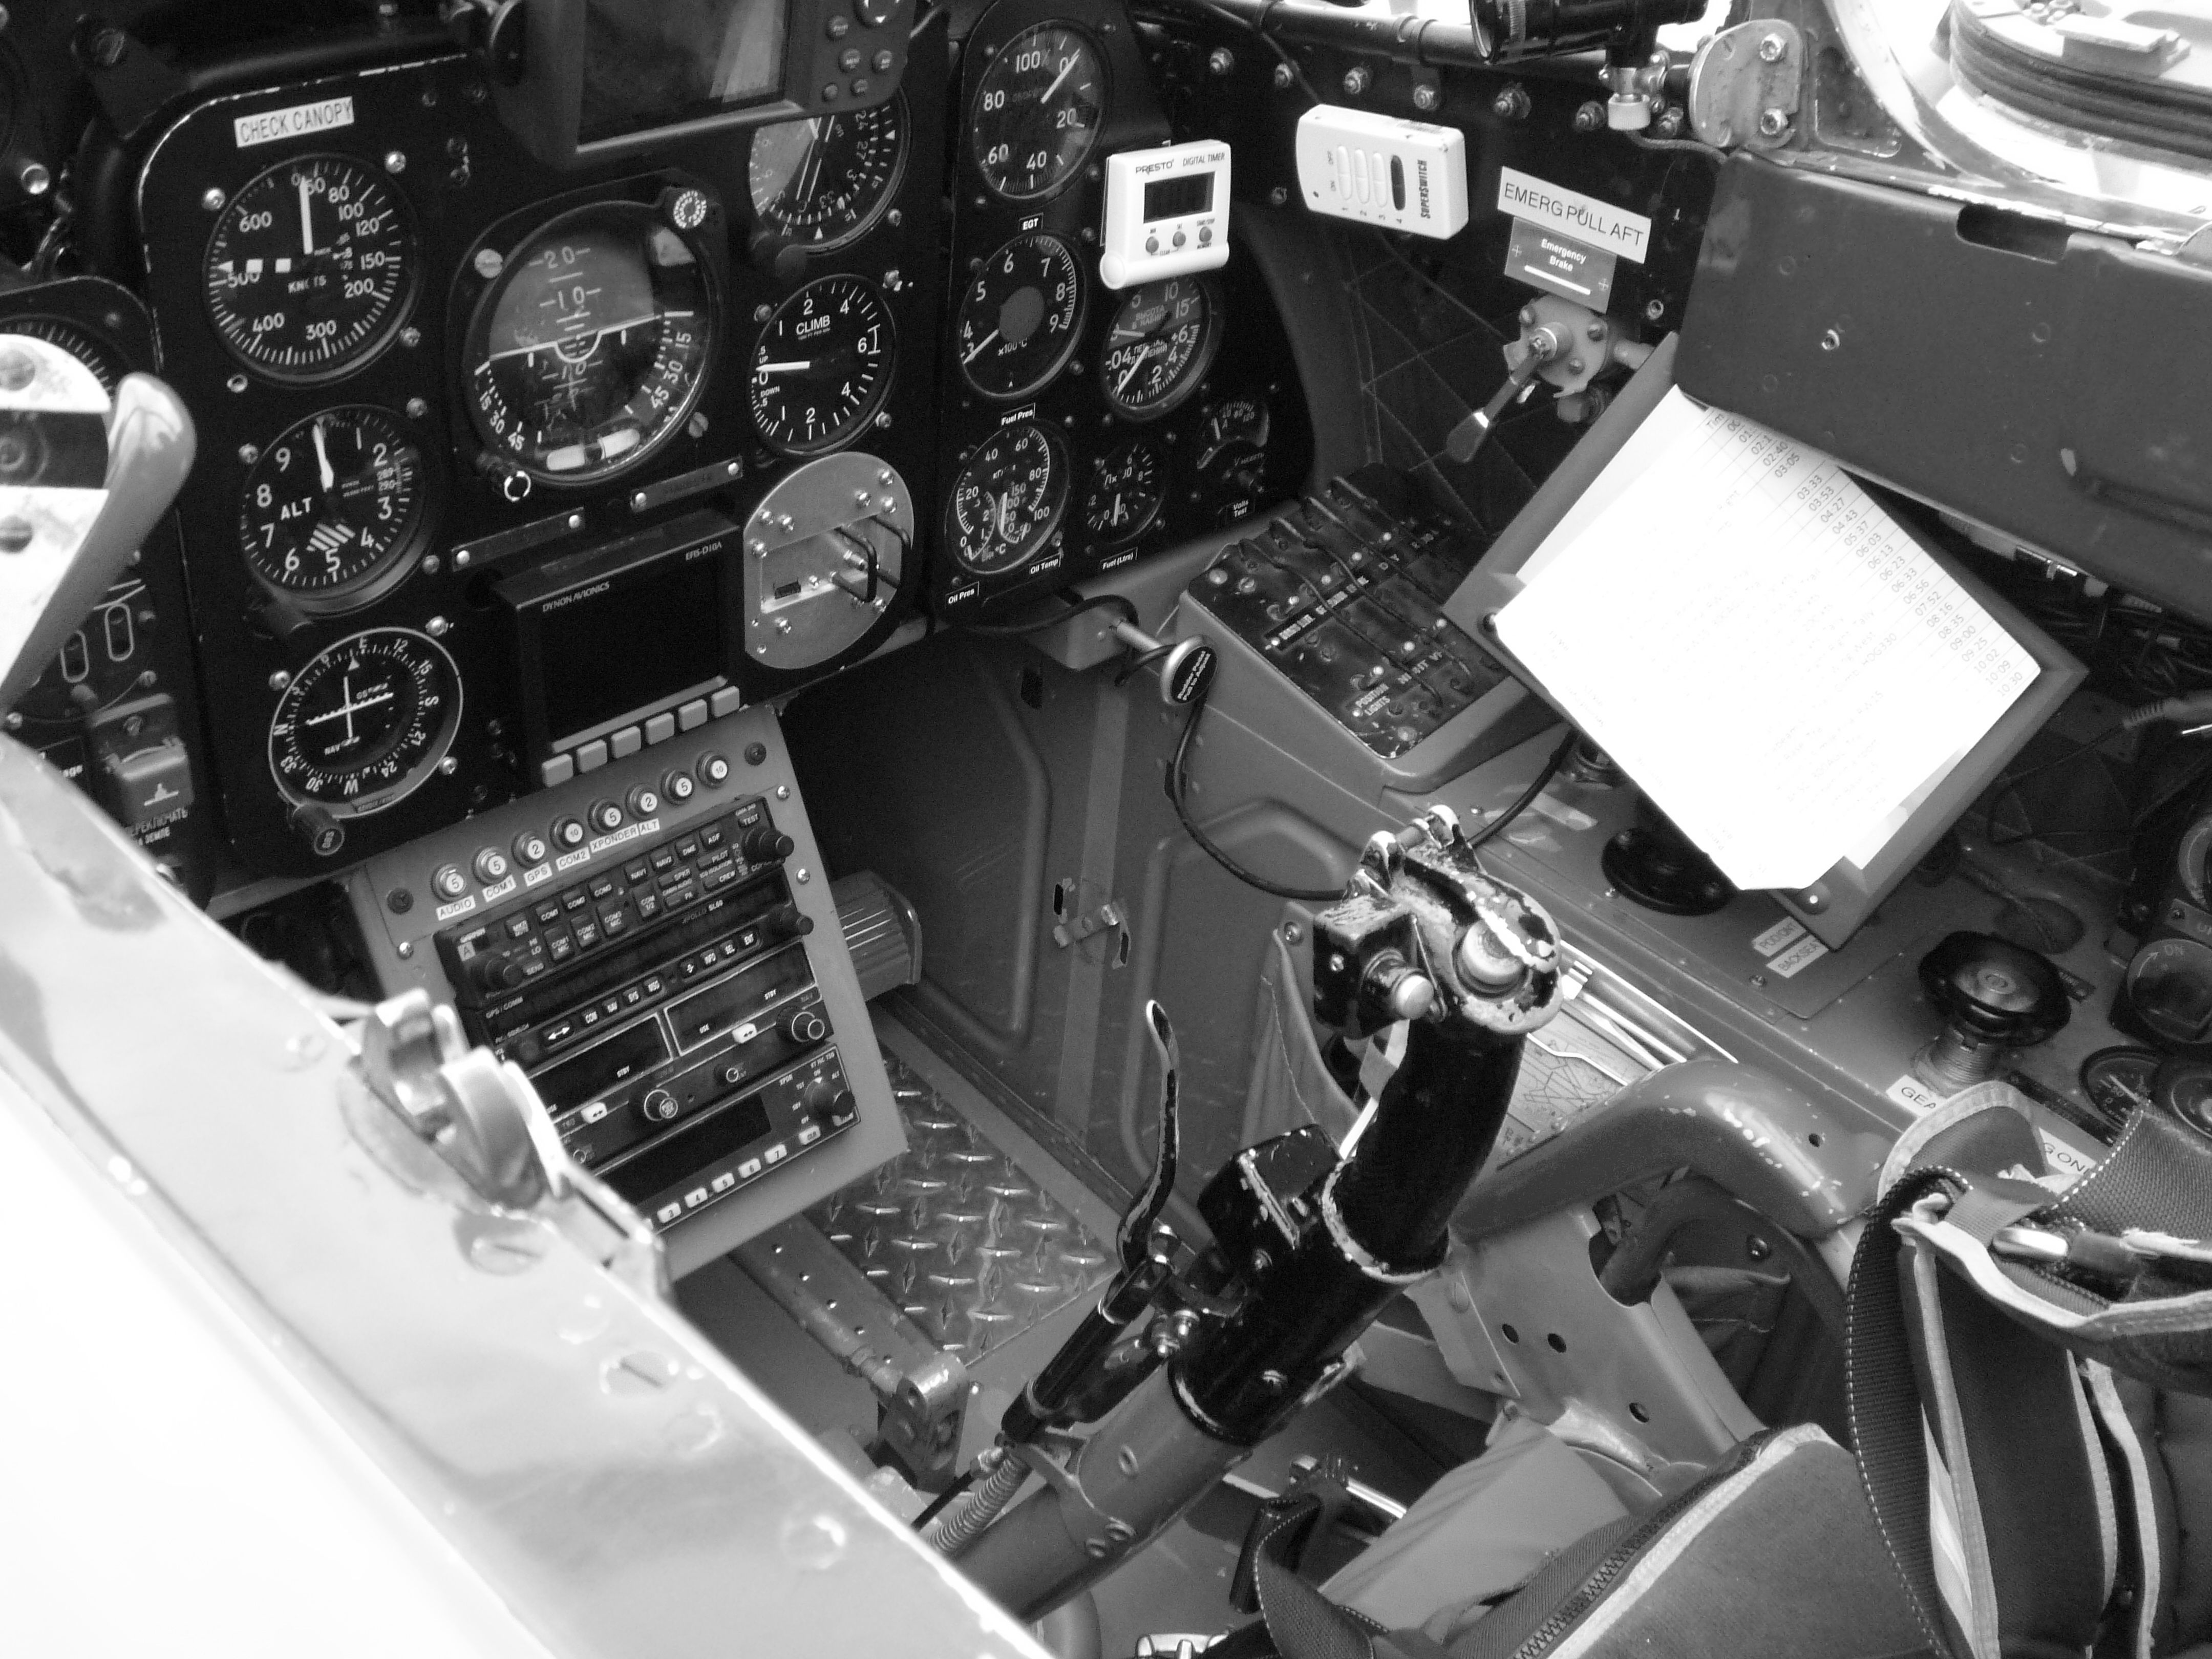 Gears of the Airplane